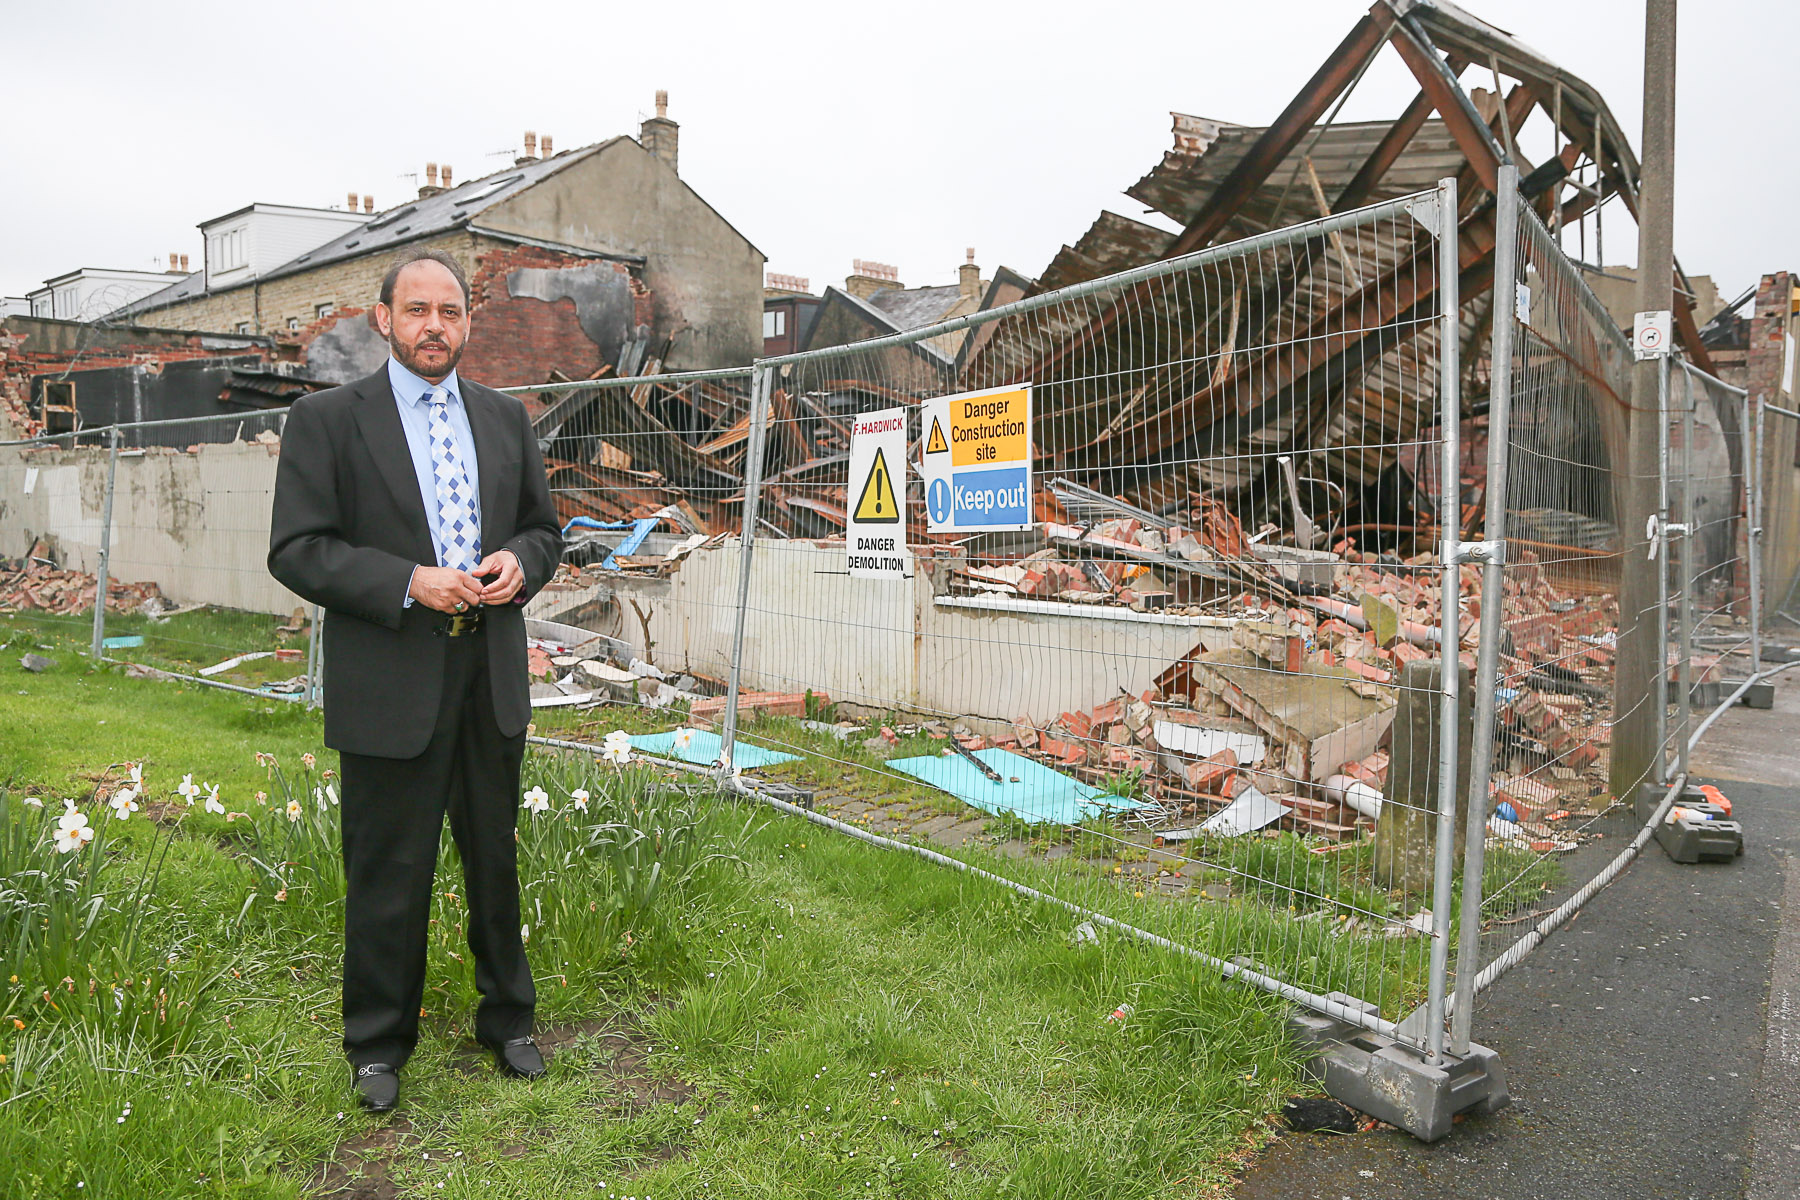 Councillor Abid Hussain at the fire damaged building on Lawkholme Lane